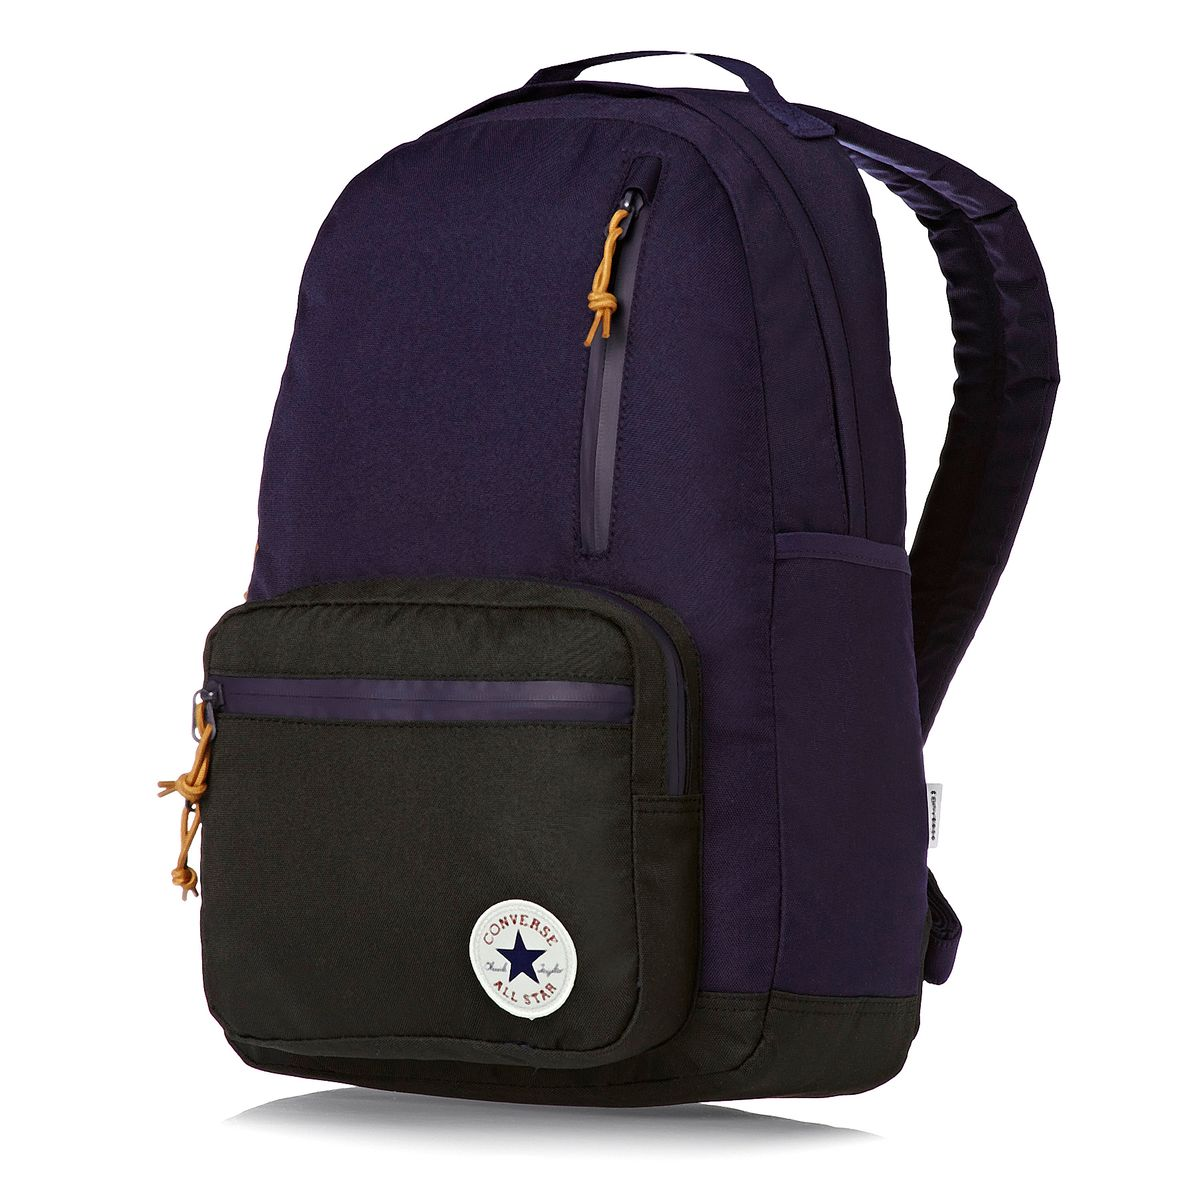 converse-backpacks-converse-the-go-pack-backpack-midnight-indigo